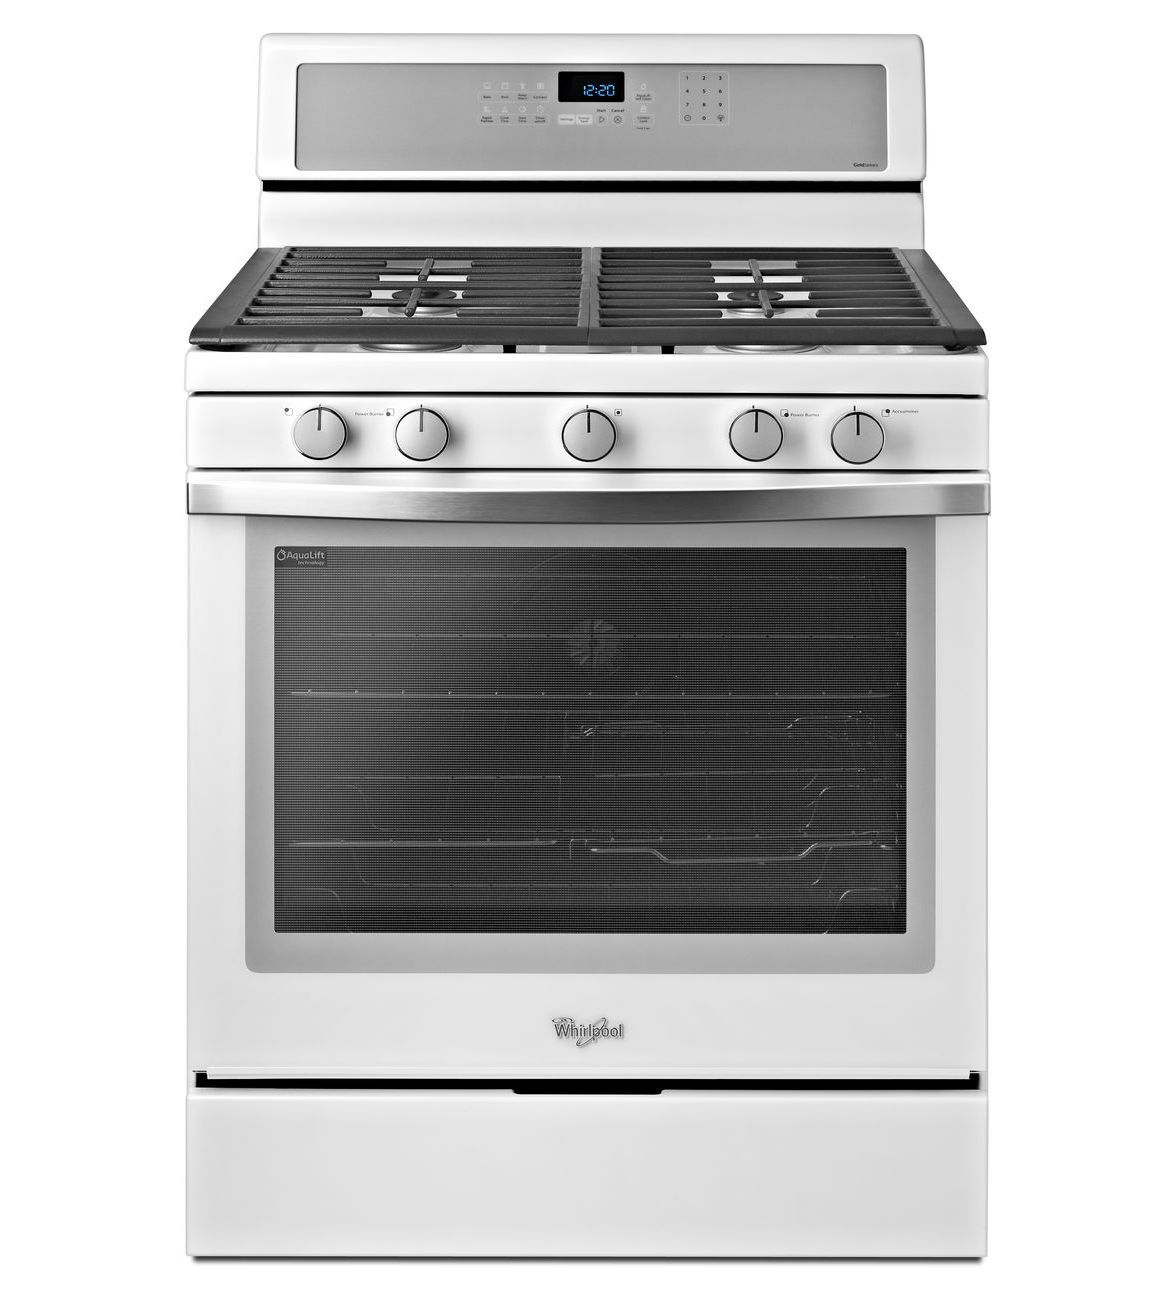 Whirlpool 5 burner gas range - 17 Best Images About Whirlpool Kitchen On Pinterest Combination Microwave Technology And White Appliances